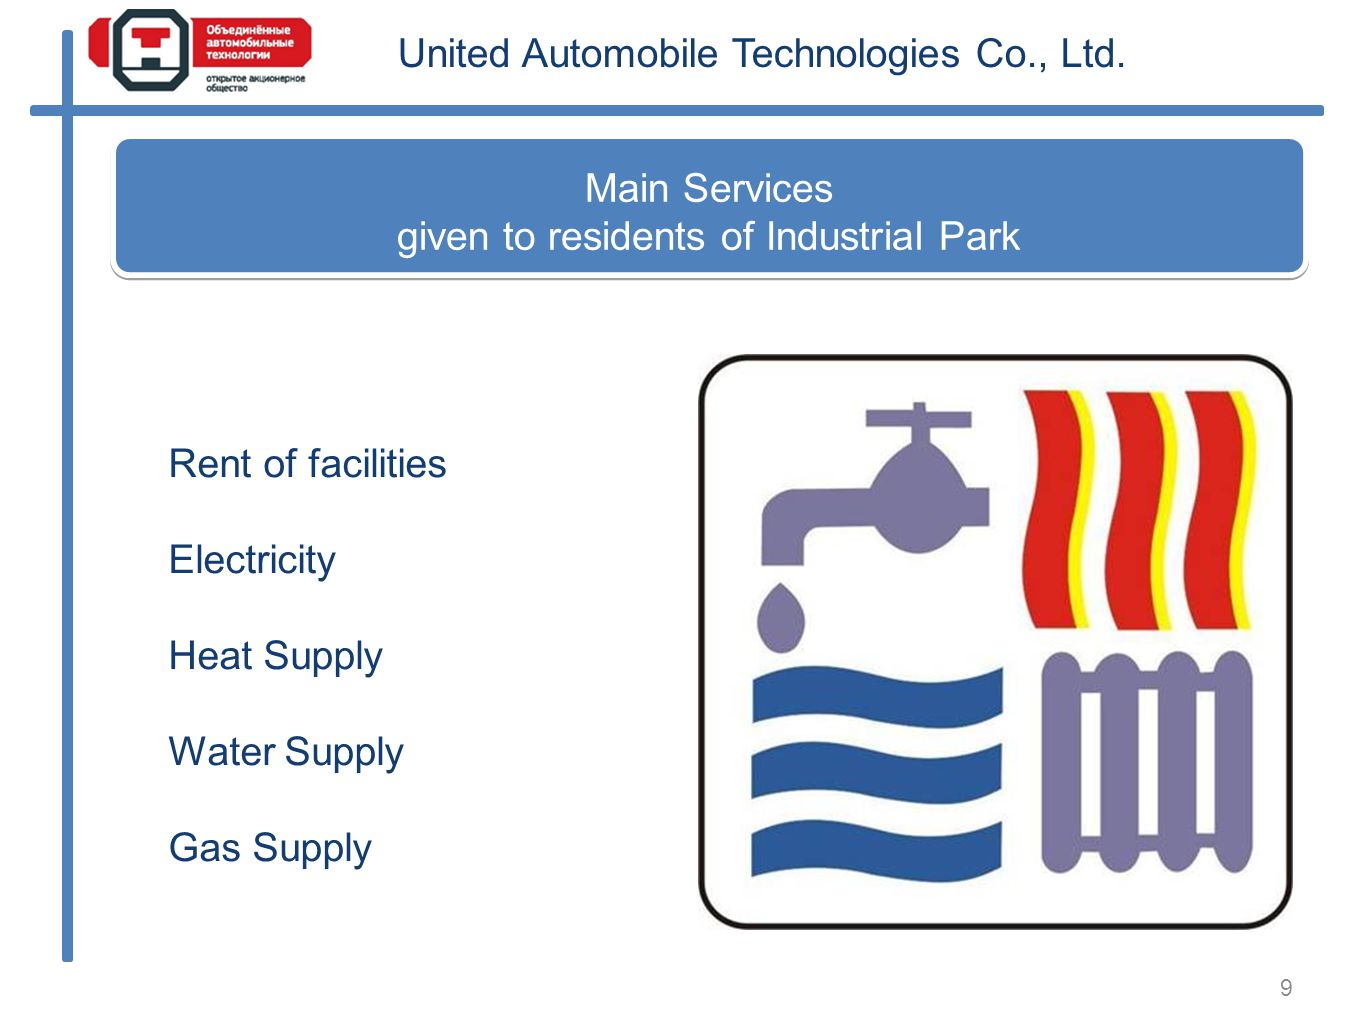 Main Services given to residents of Industrial Park 9 Rent of facilities Electricity Heat Supply Water Supply Gas Supply United Automobile Technologies Co., Ltd.